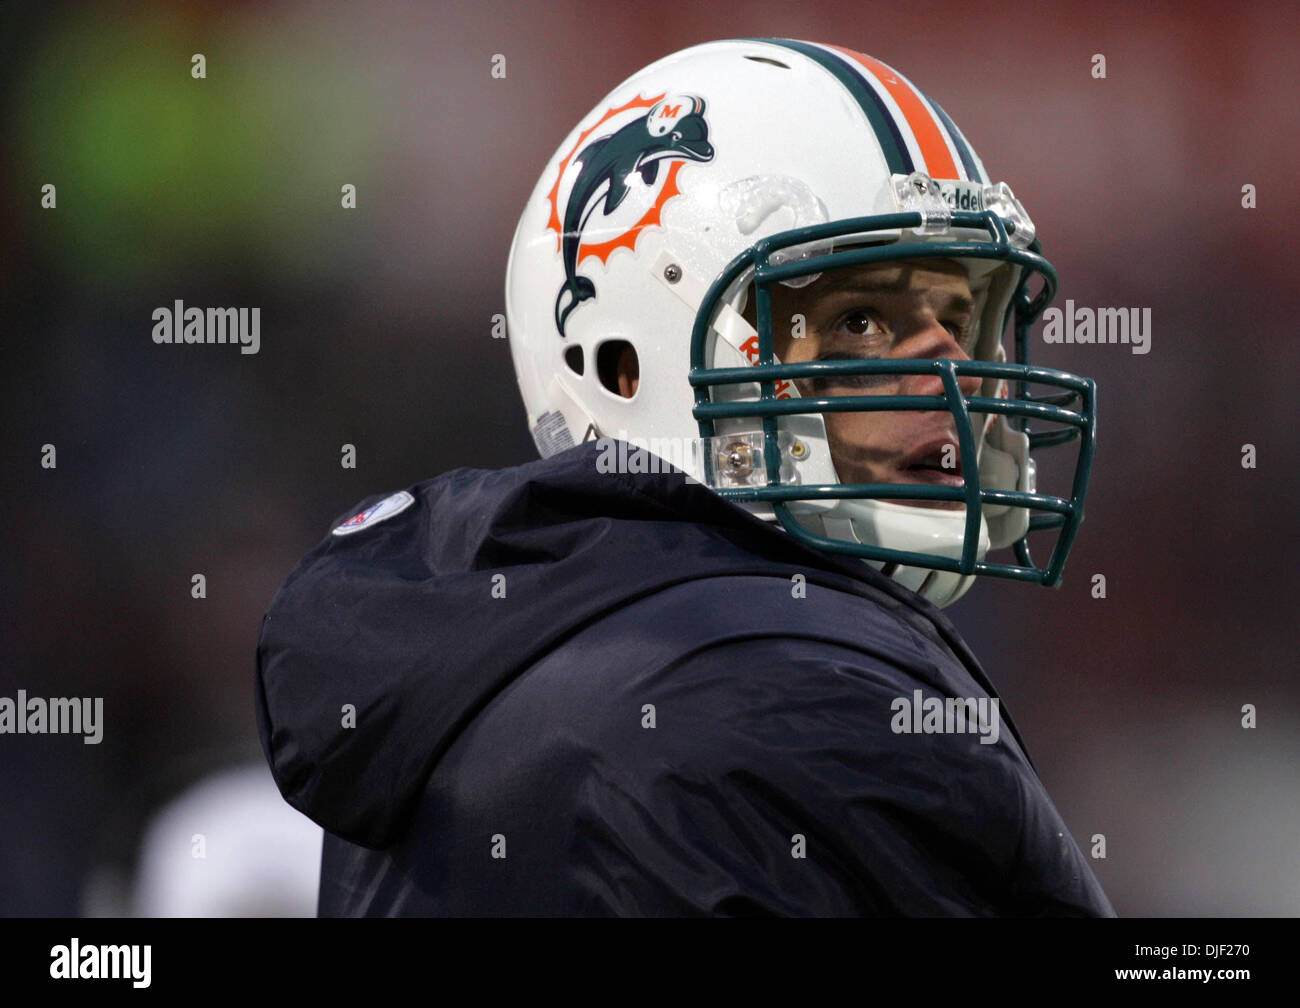 Dec 09, 2007 - Buffalo, New York, USA - Dolphins QB JOHN BECK walks the sidelines aftger being replaced by Cleo Stock Photo